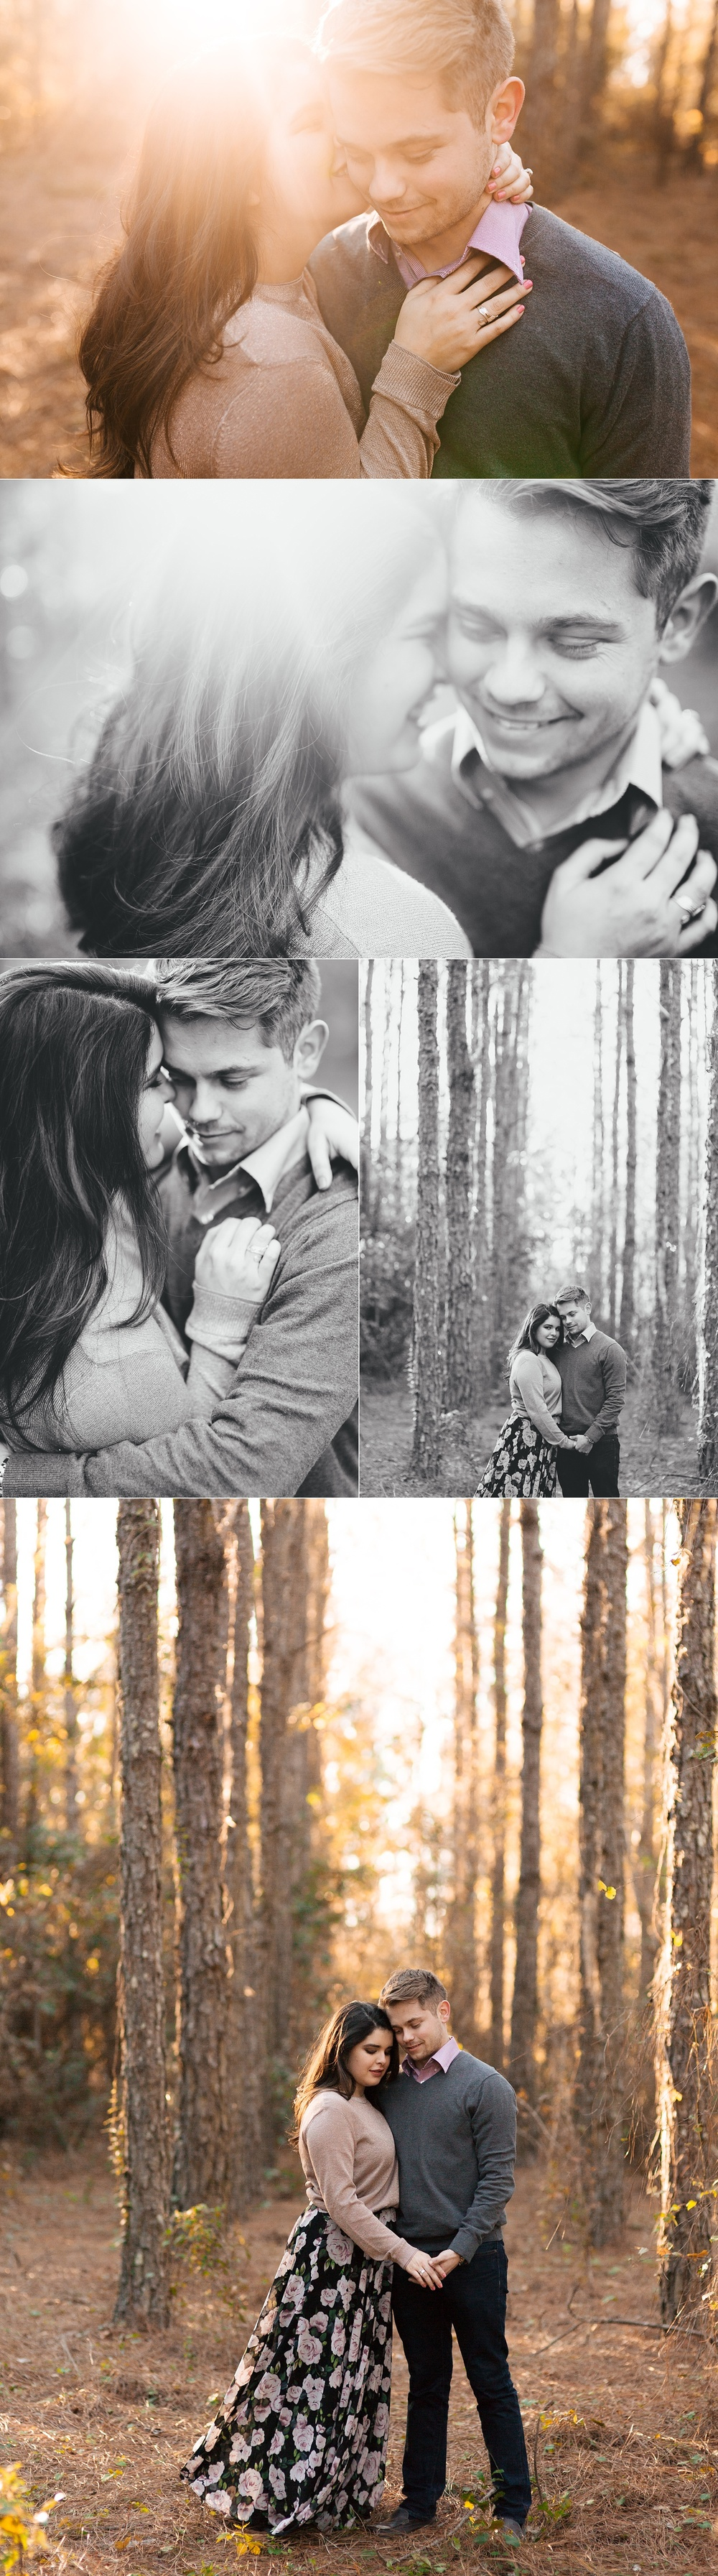 florida-winter-woodsy-engagement-session-12.jpg